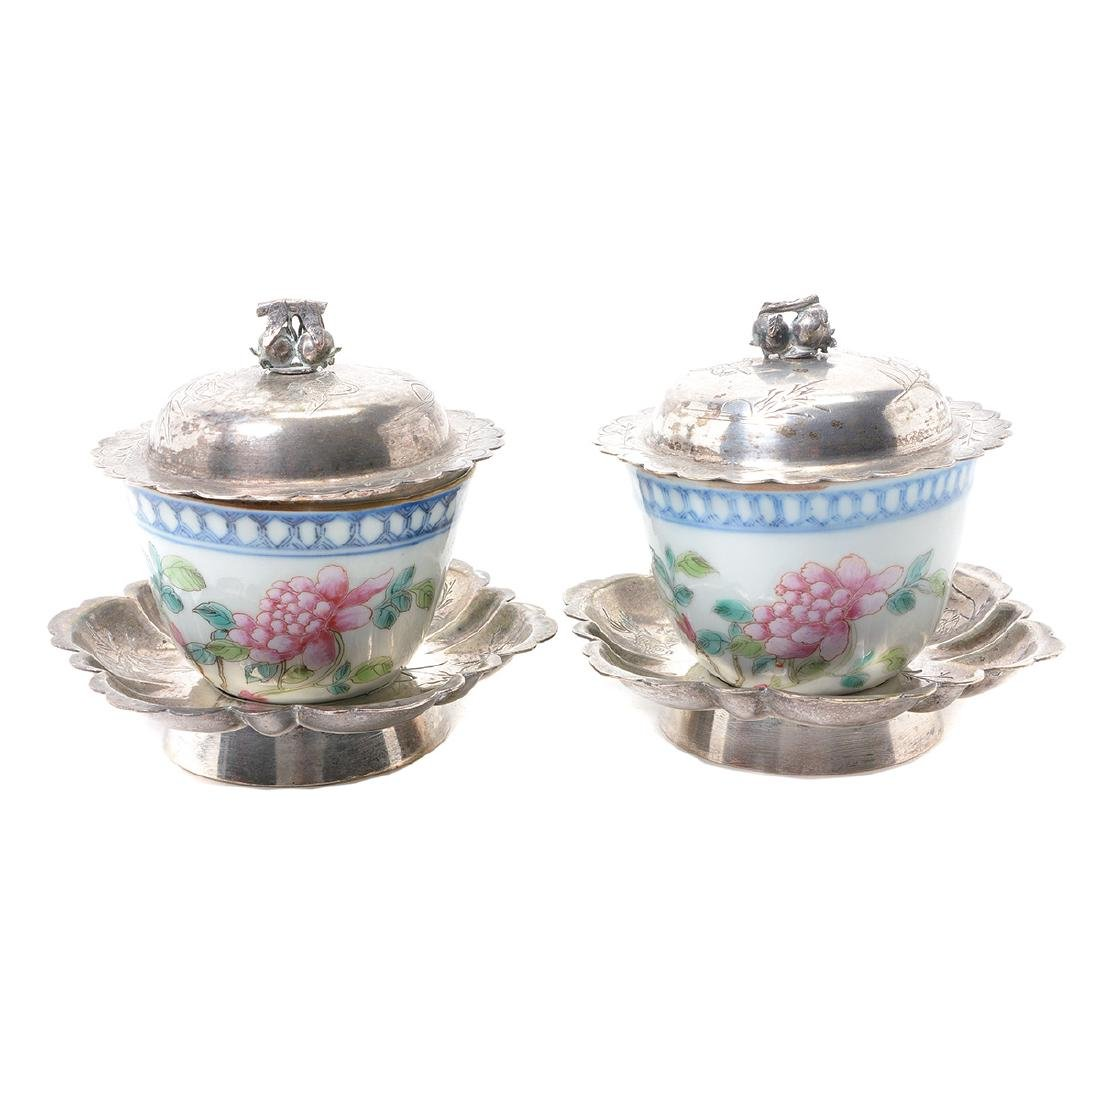 Pr of Famille Rose Cups with Silver Lids & Stands,